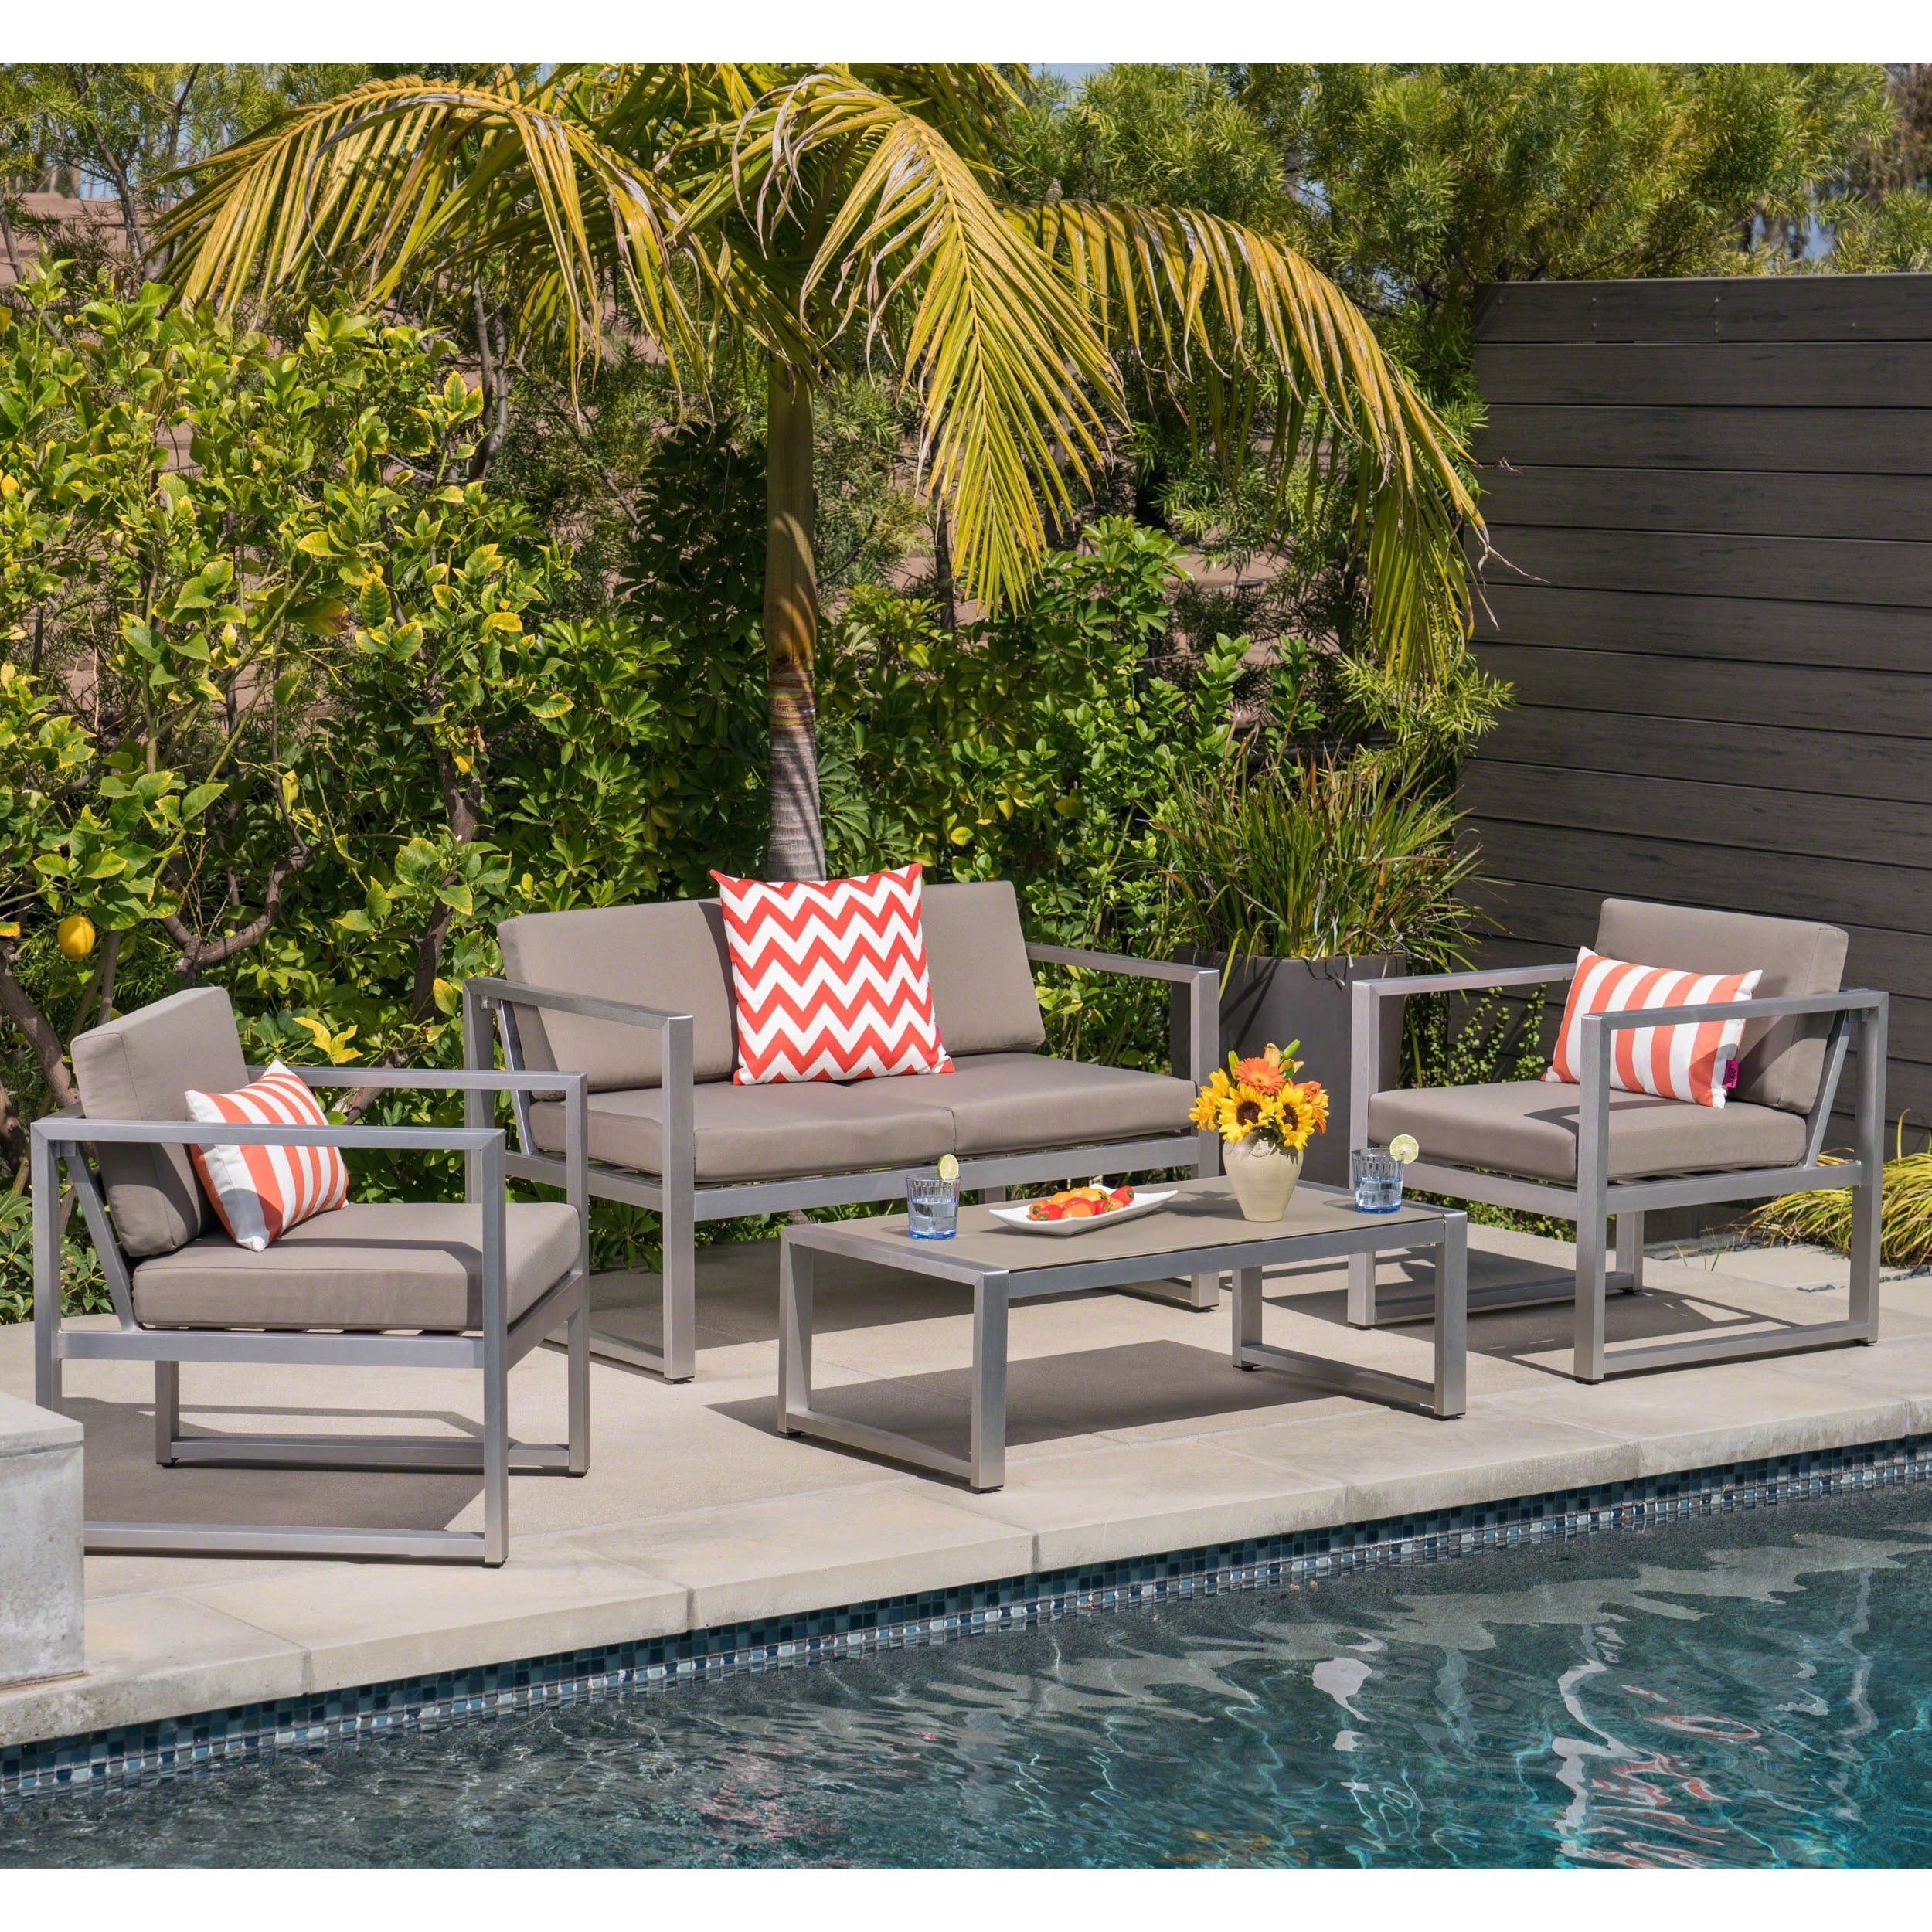 Shop Navan Outdoor 4-piece Aluminum Conversation Set with Grey